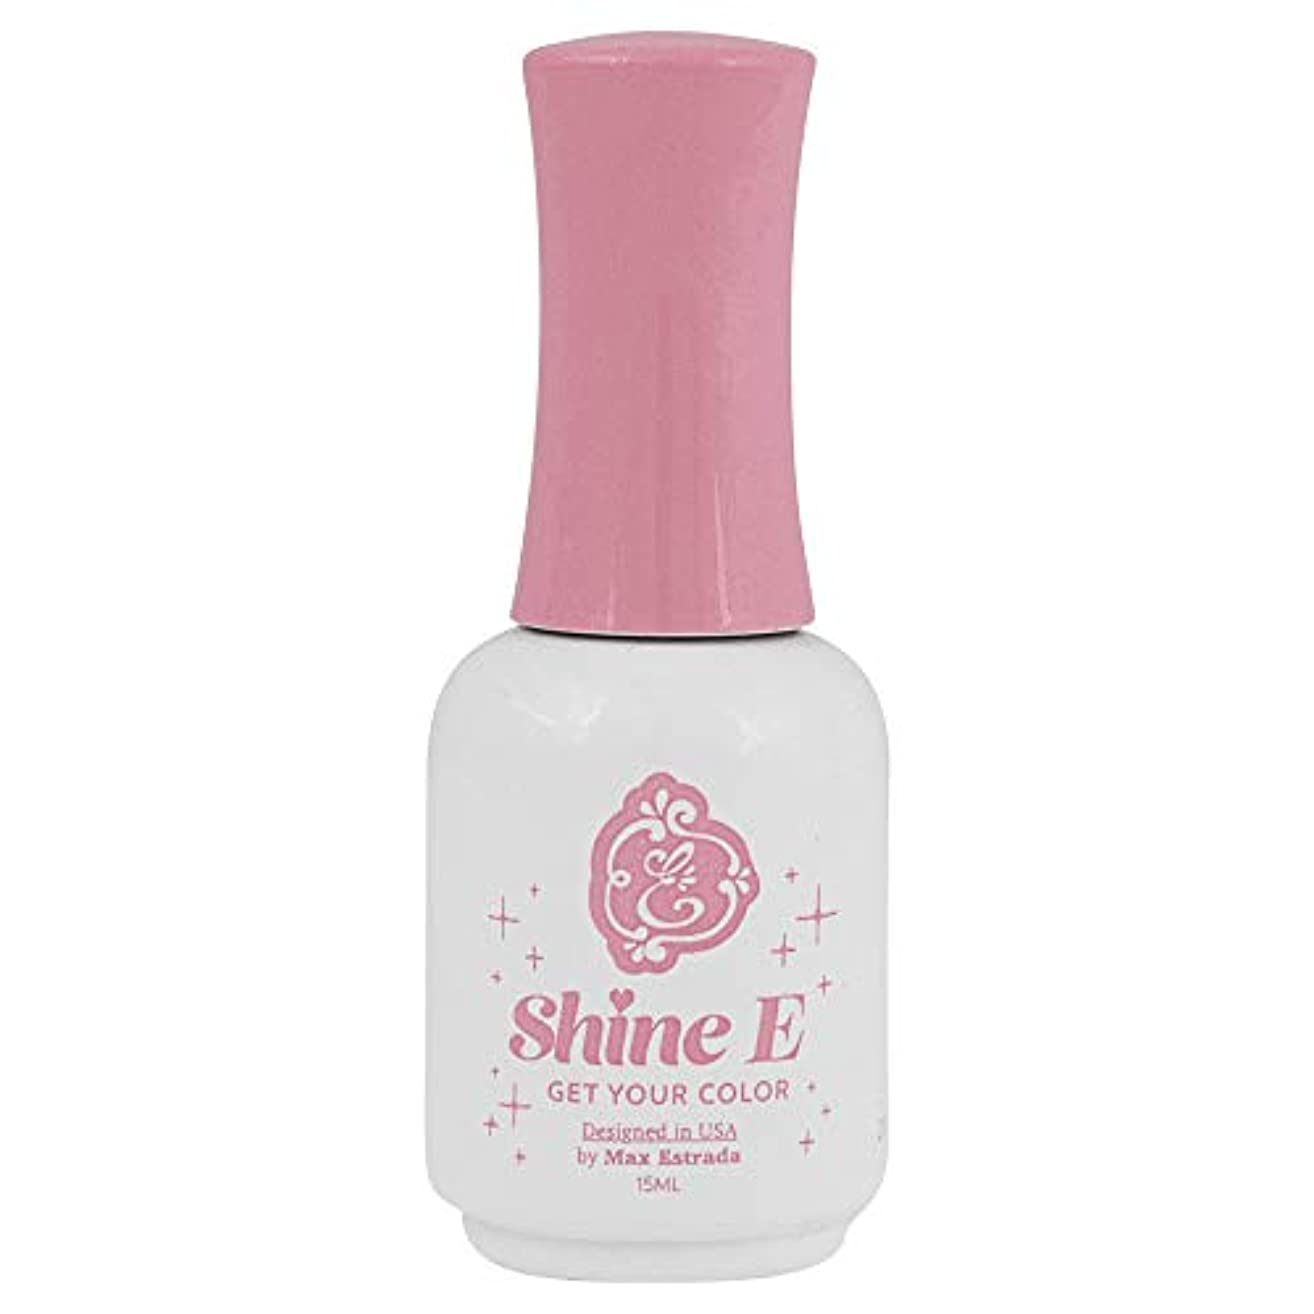 EXCLUSIVE NAIL COUTURE シャインE トップコート 15ml